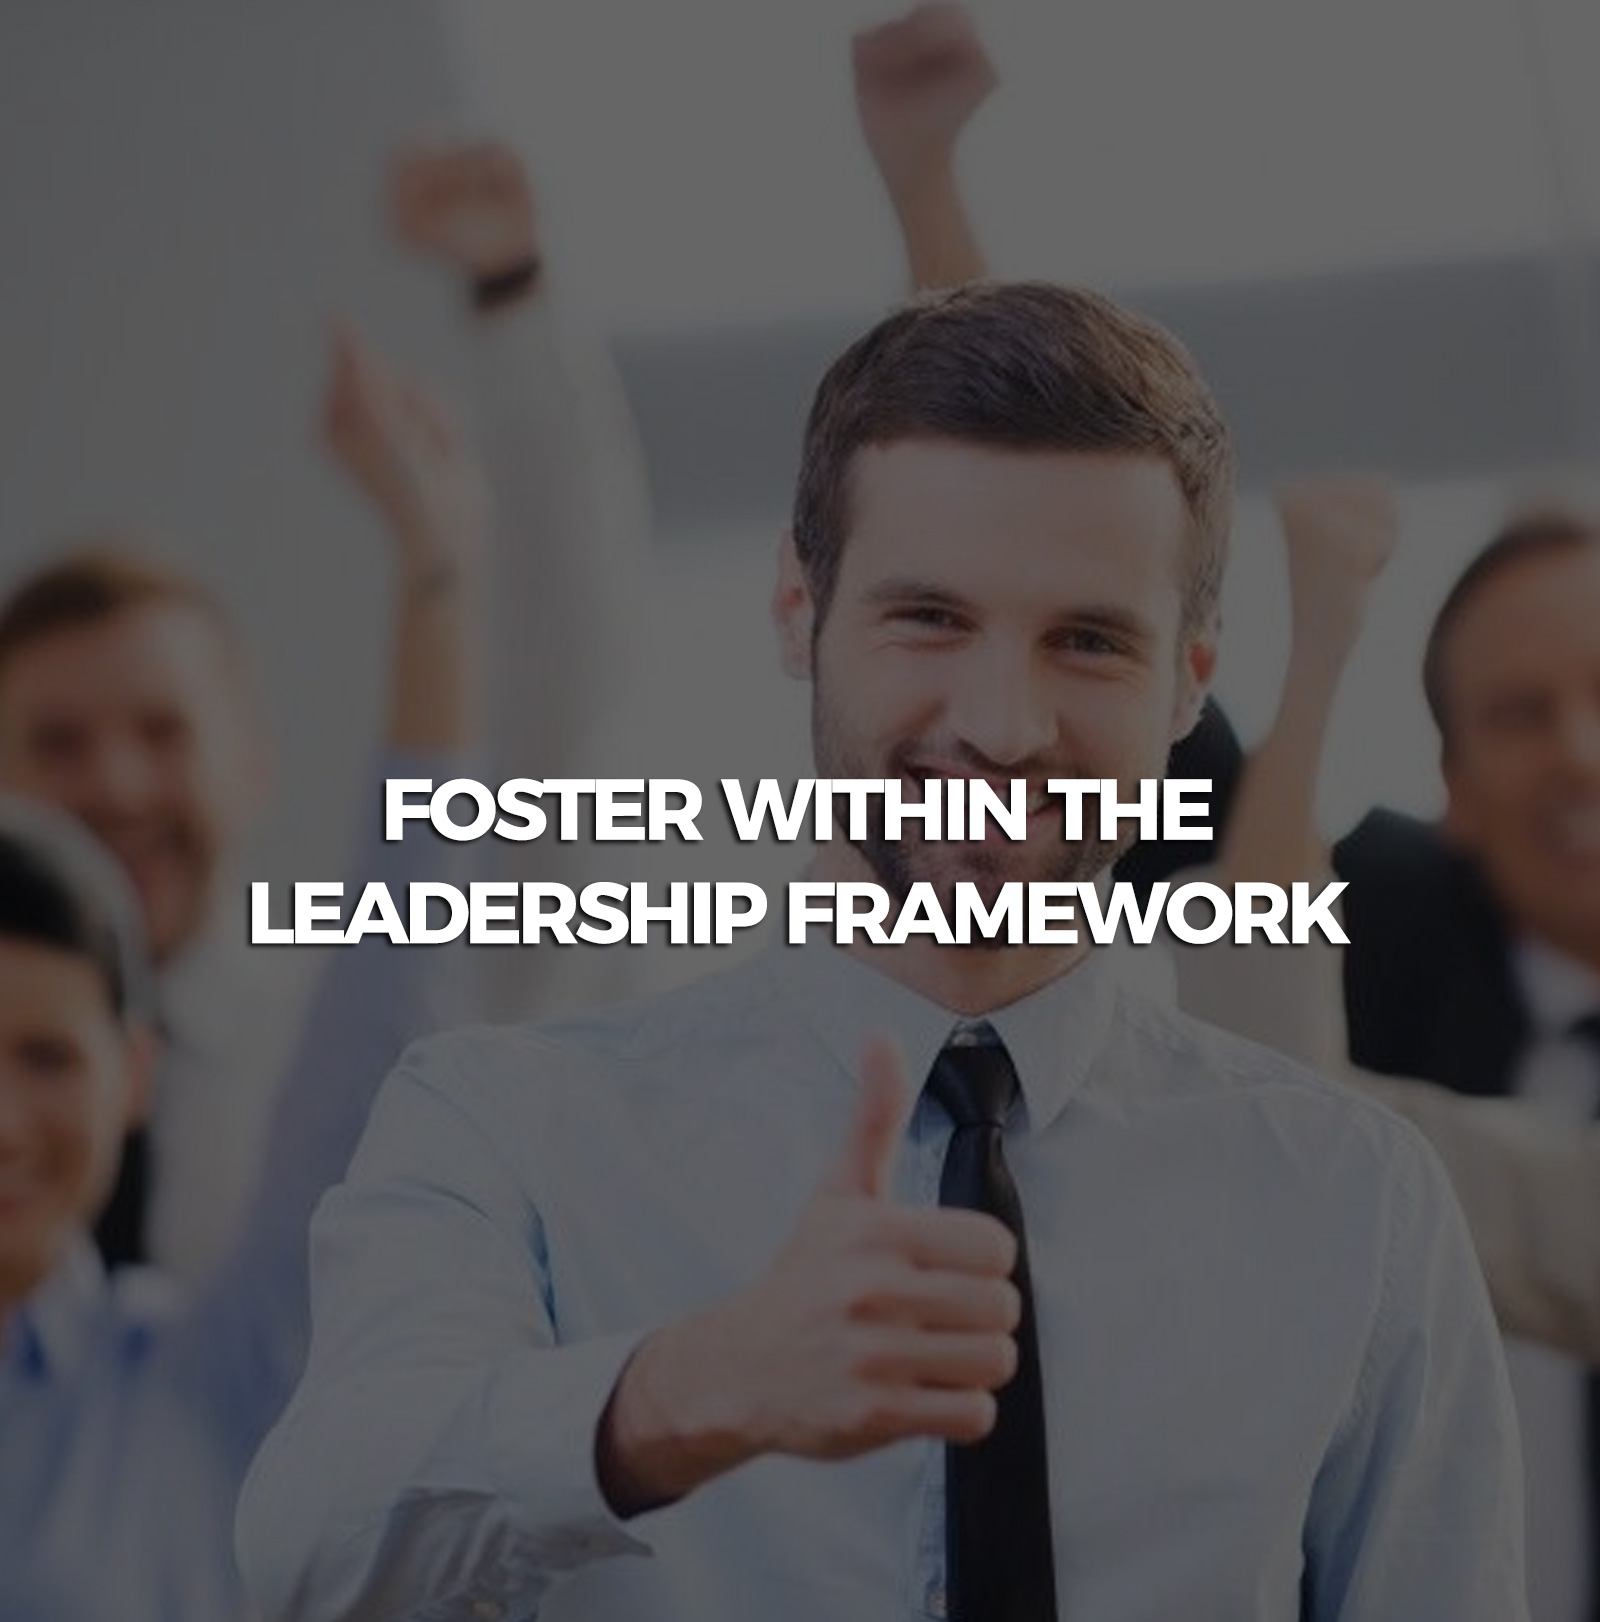 Fostewithin-the-leadership-framework